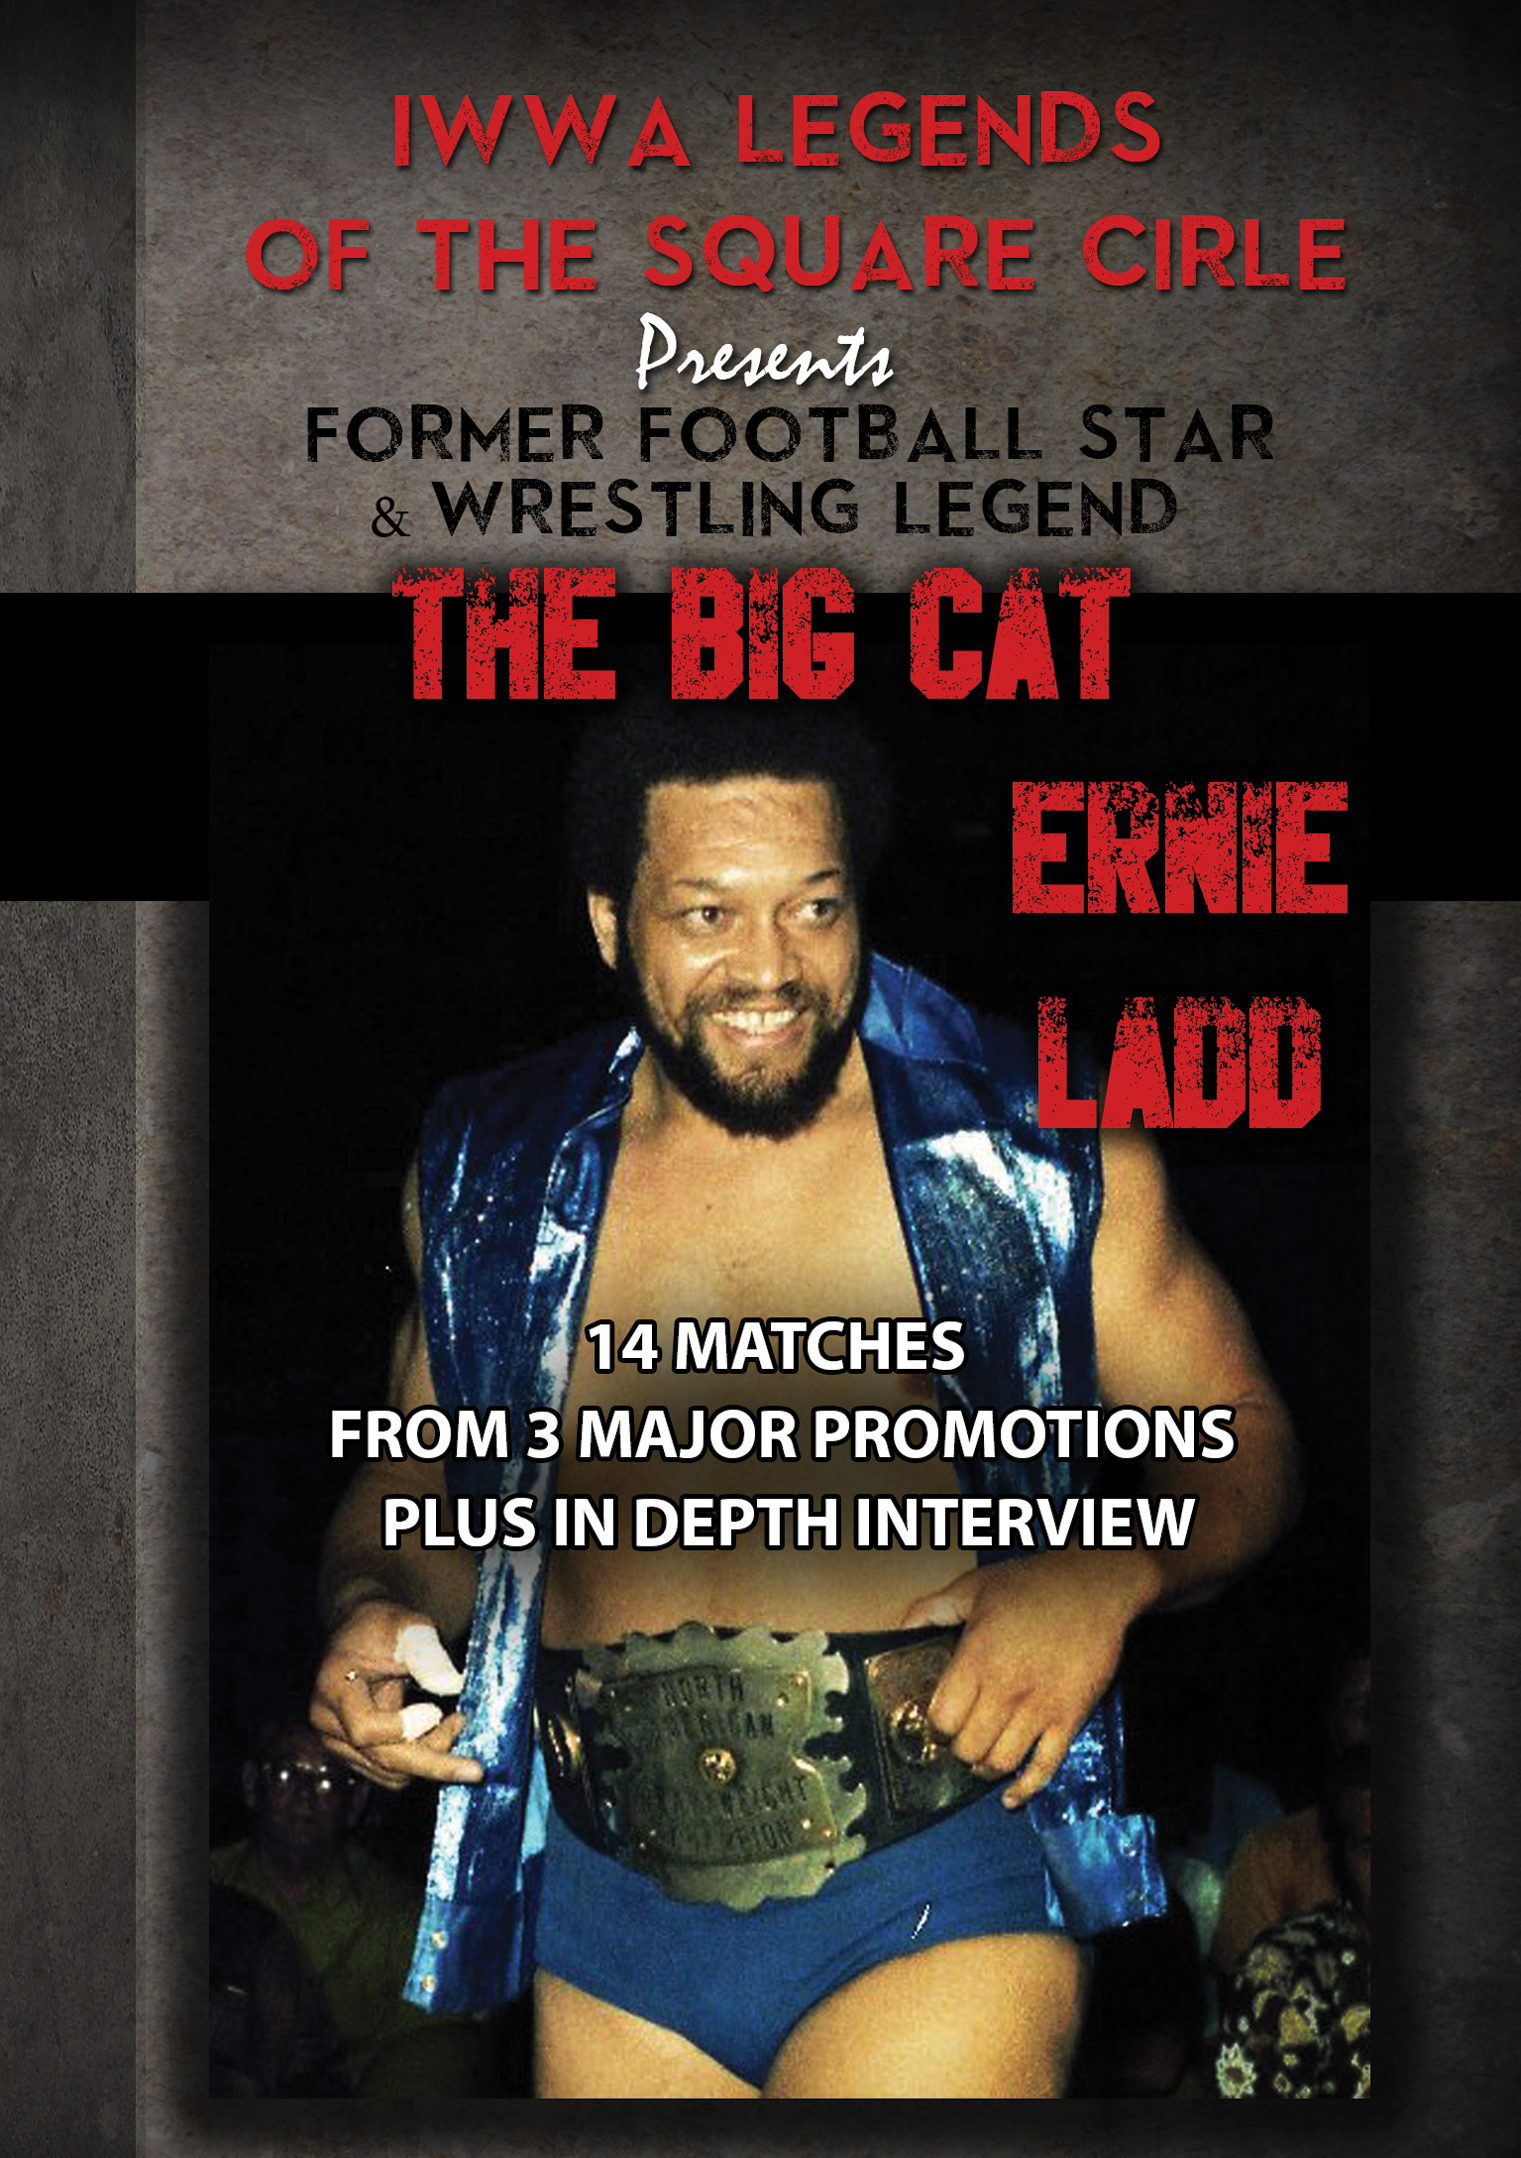 Legends of the Square Circle: The Big Cat - Ernie Ladd